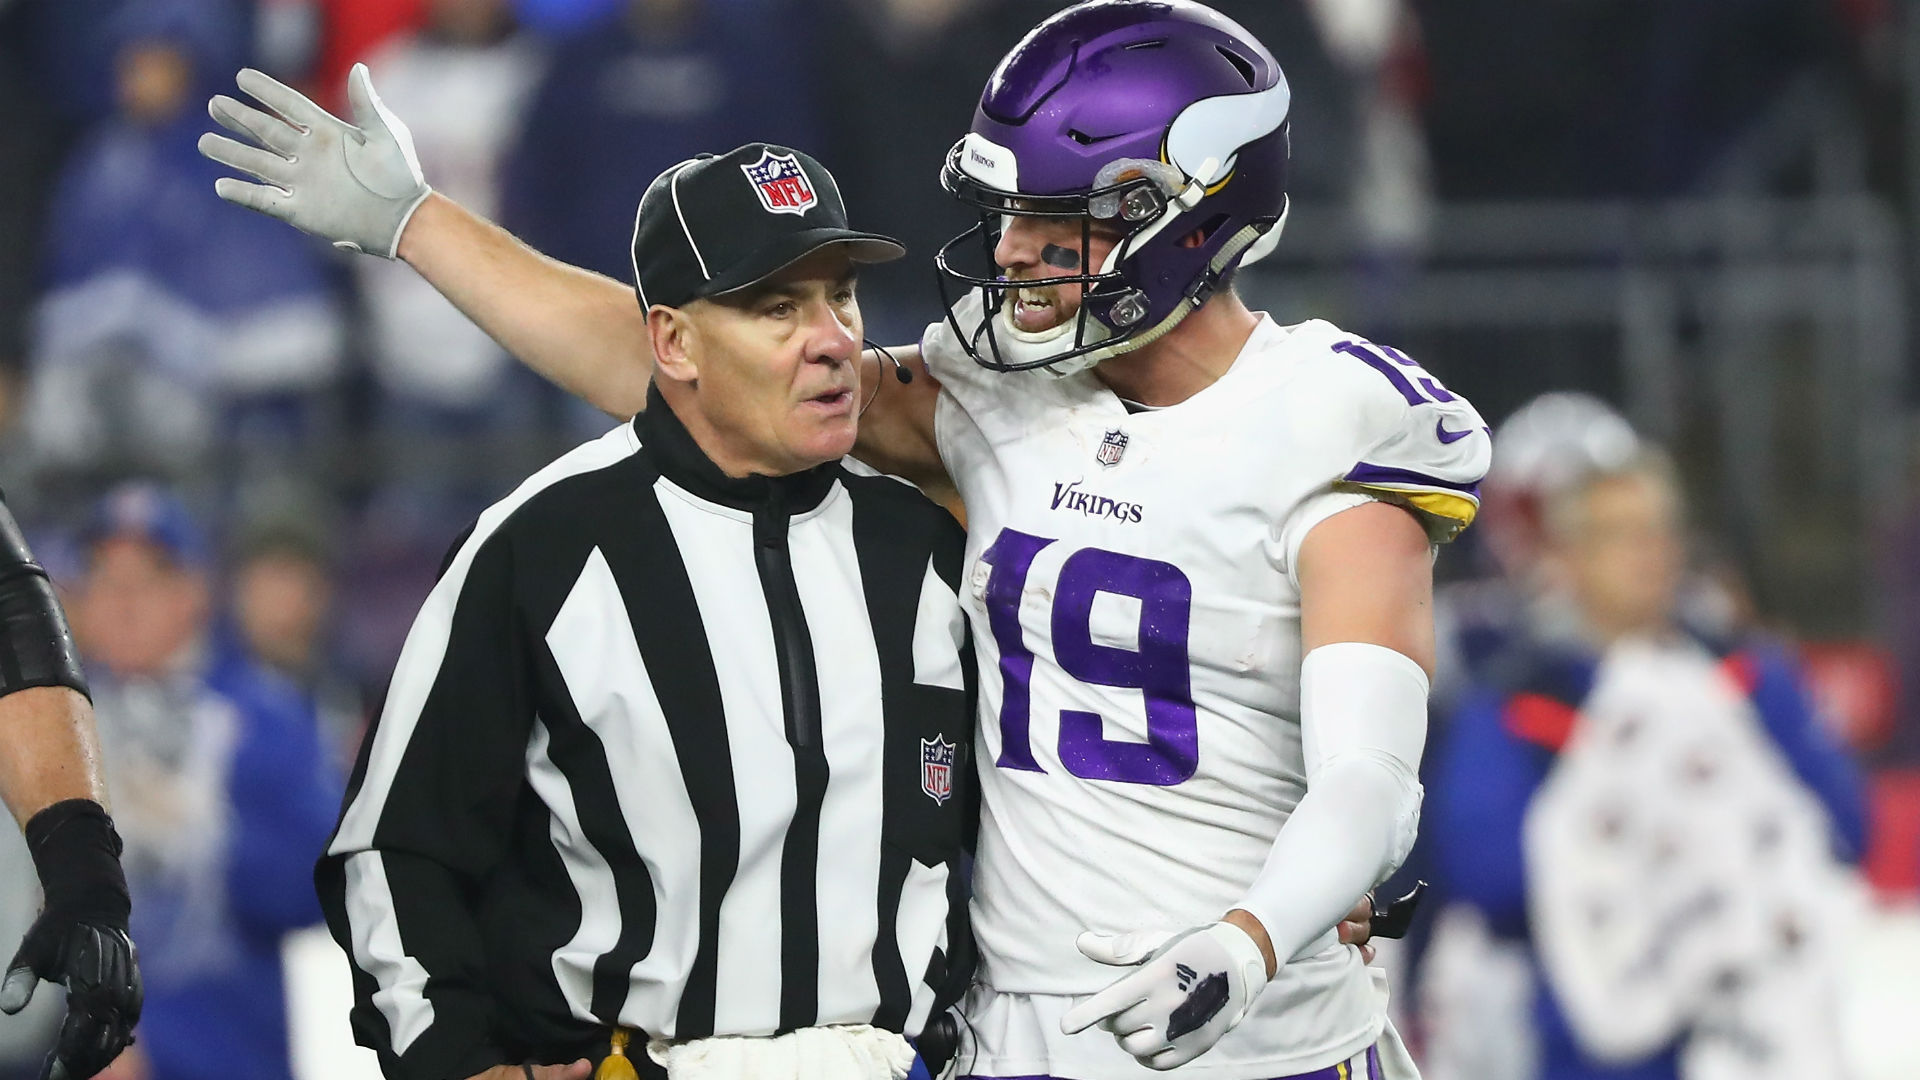 Bill Belichick tells Adam Thielen to shut the f--- up